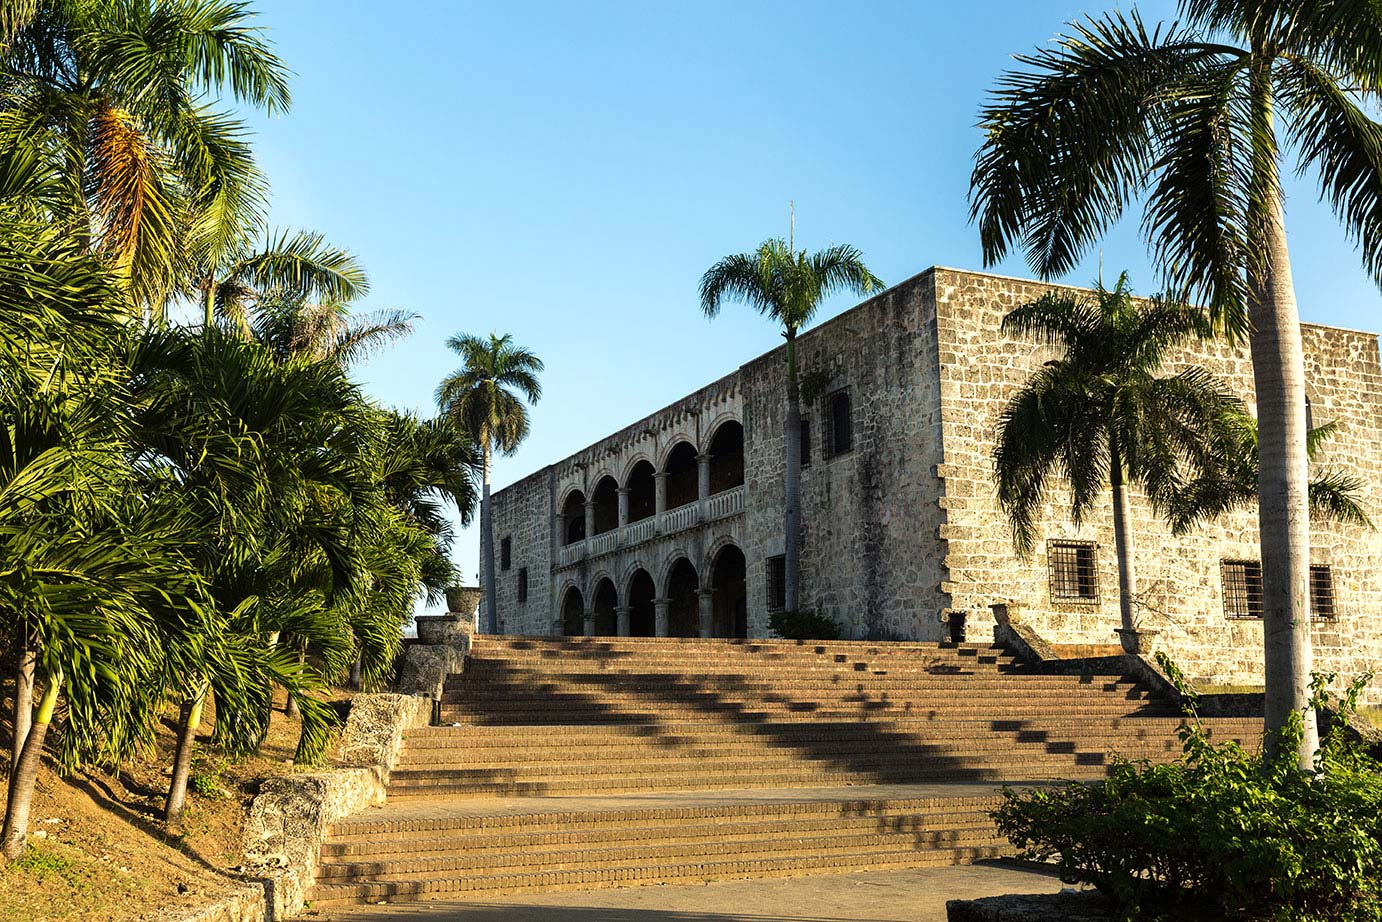 A stone building surrounded by palm trees in Santo Domingo